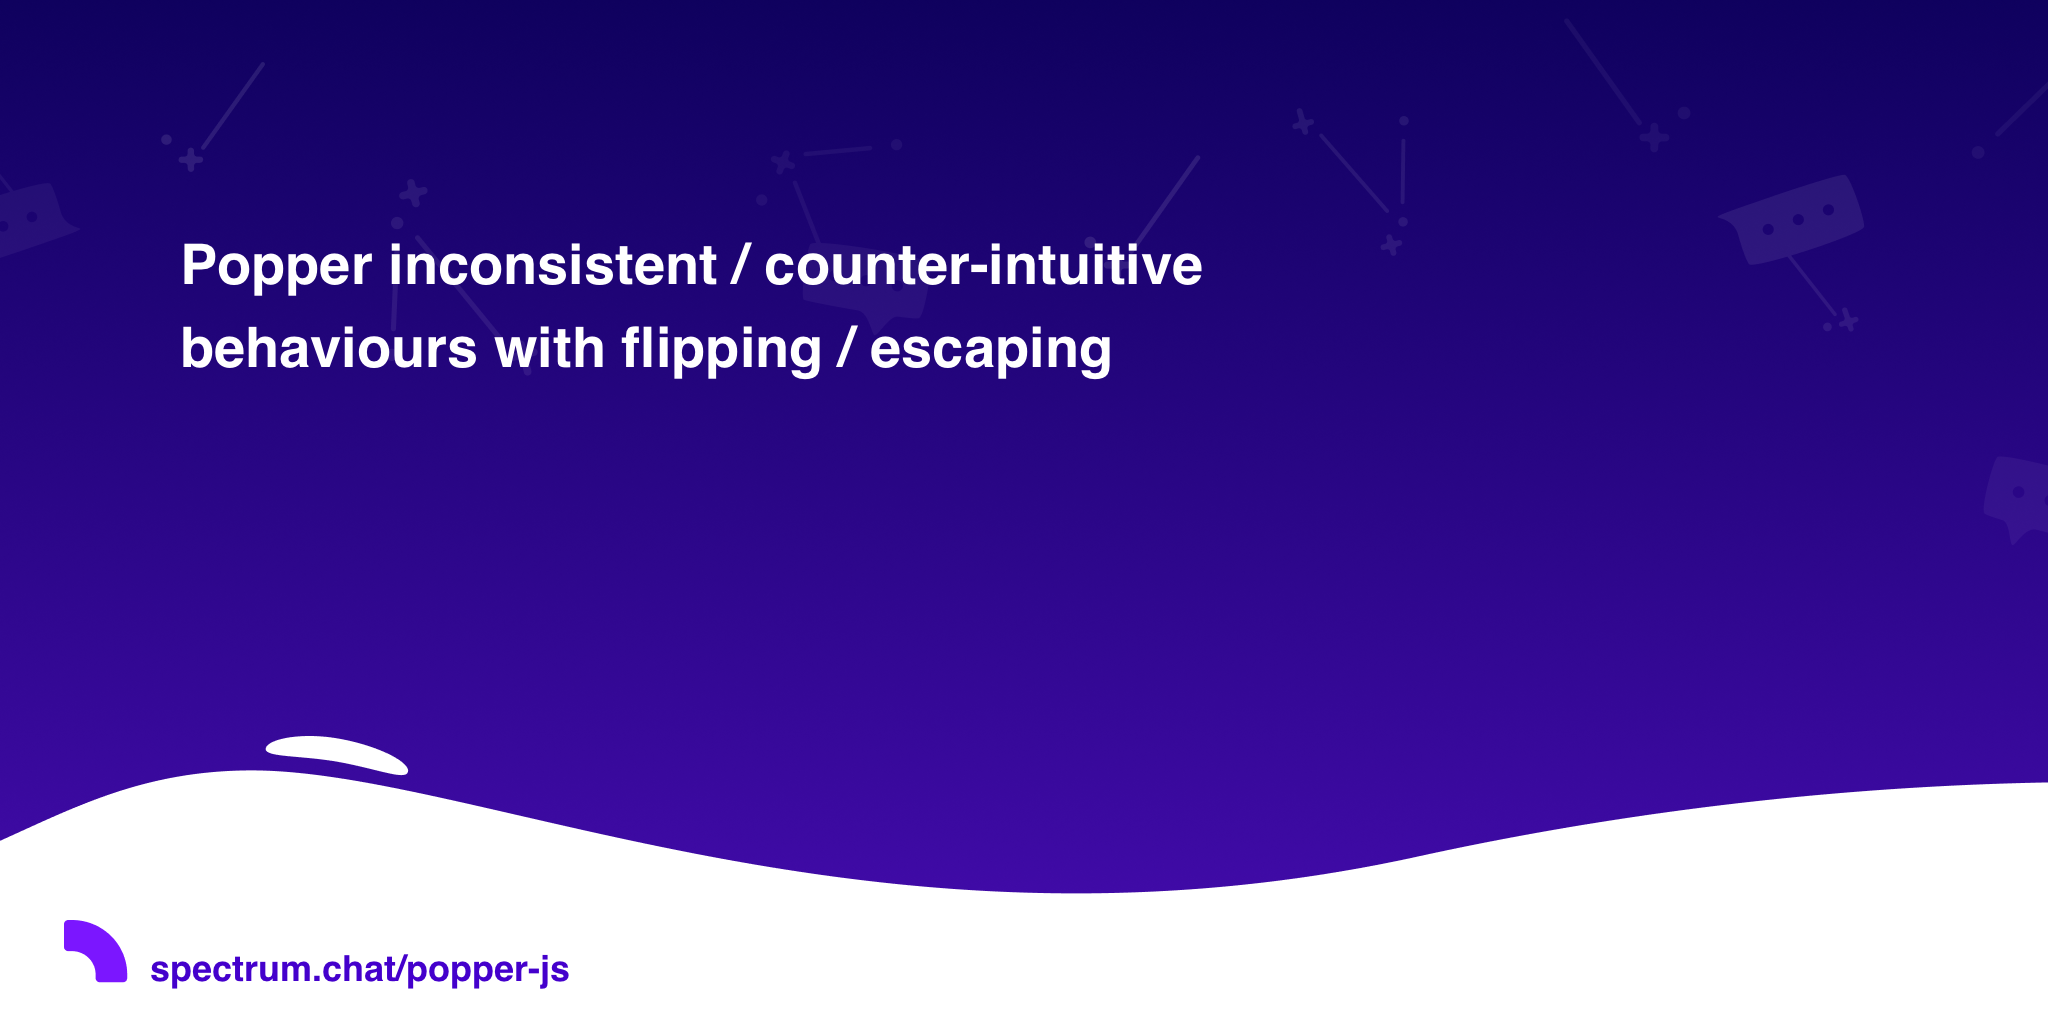 Popper inconsistent / counter-intuitive behaviours with flipping